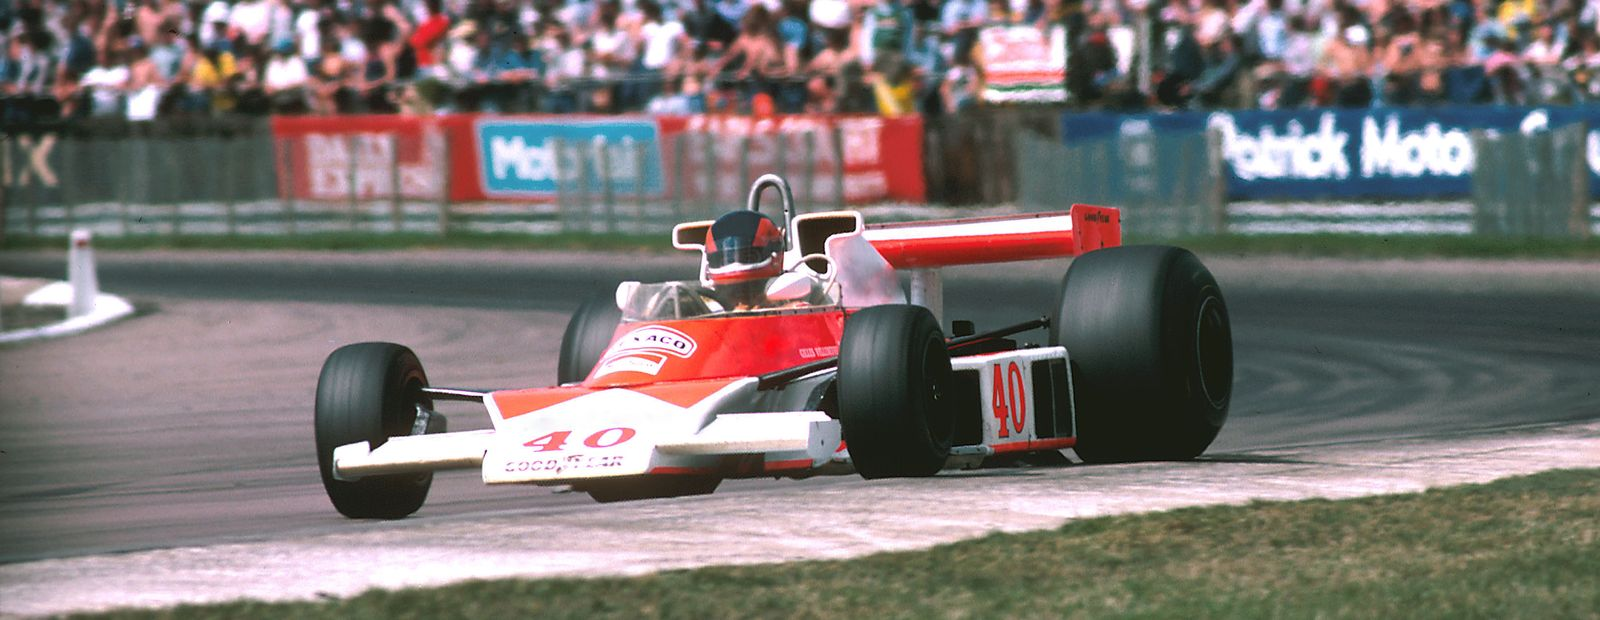 Gilles Villeneuve and McLaren